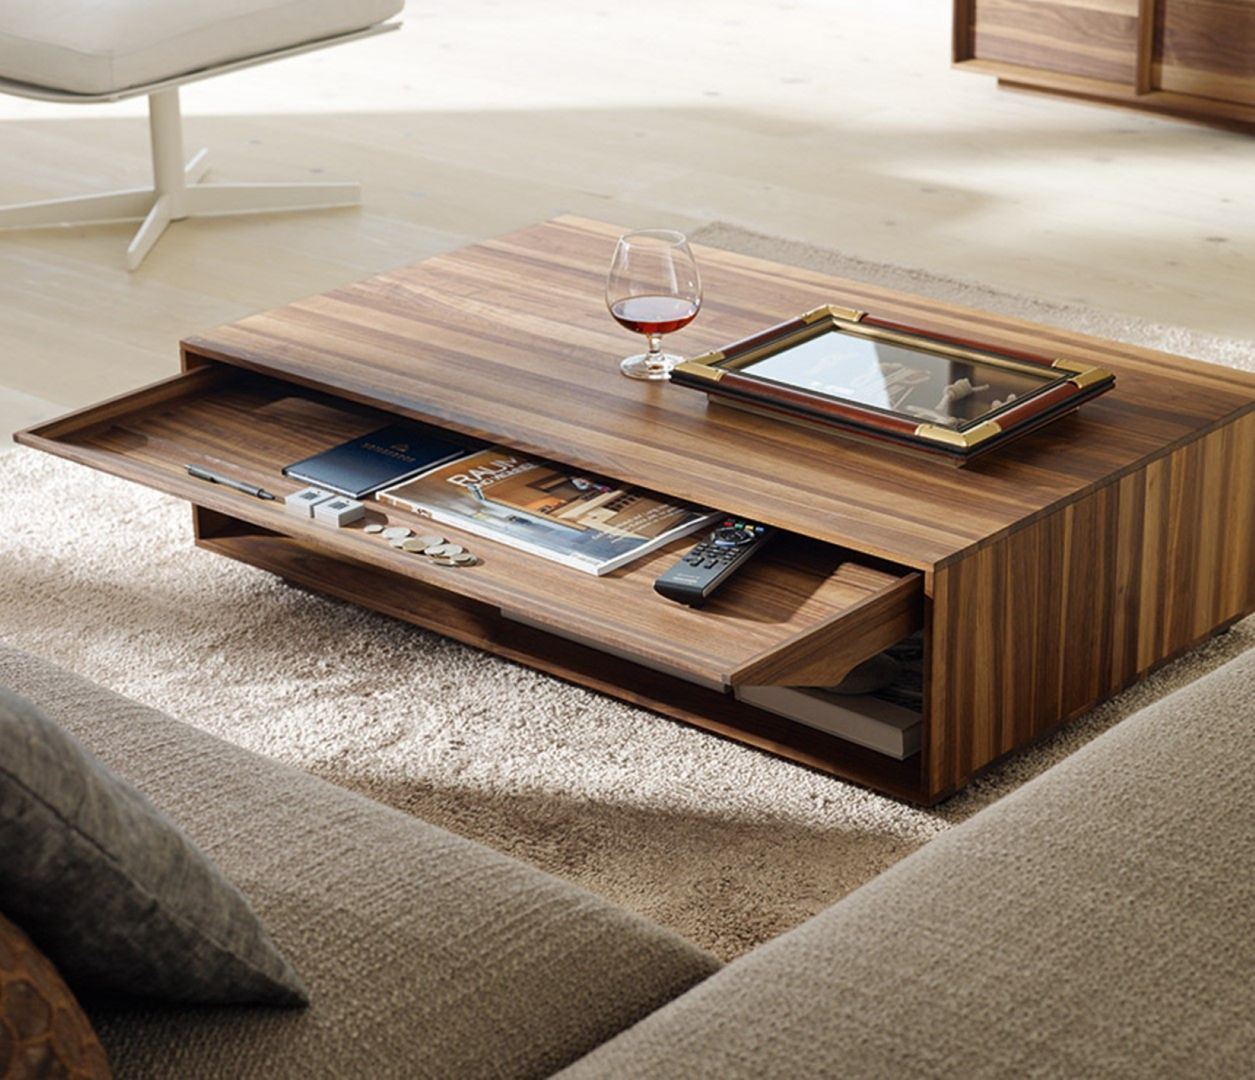 25 Best Amazing Diy Coffee Table Ideas For Your Space Cozy Coffee Table Coffee Table Design Modern Contemporary Coffee Table [ 1080 x 1255 Pixel ]